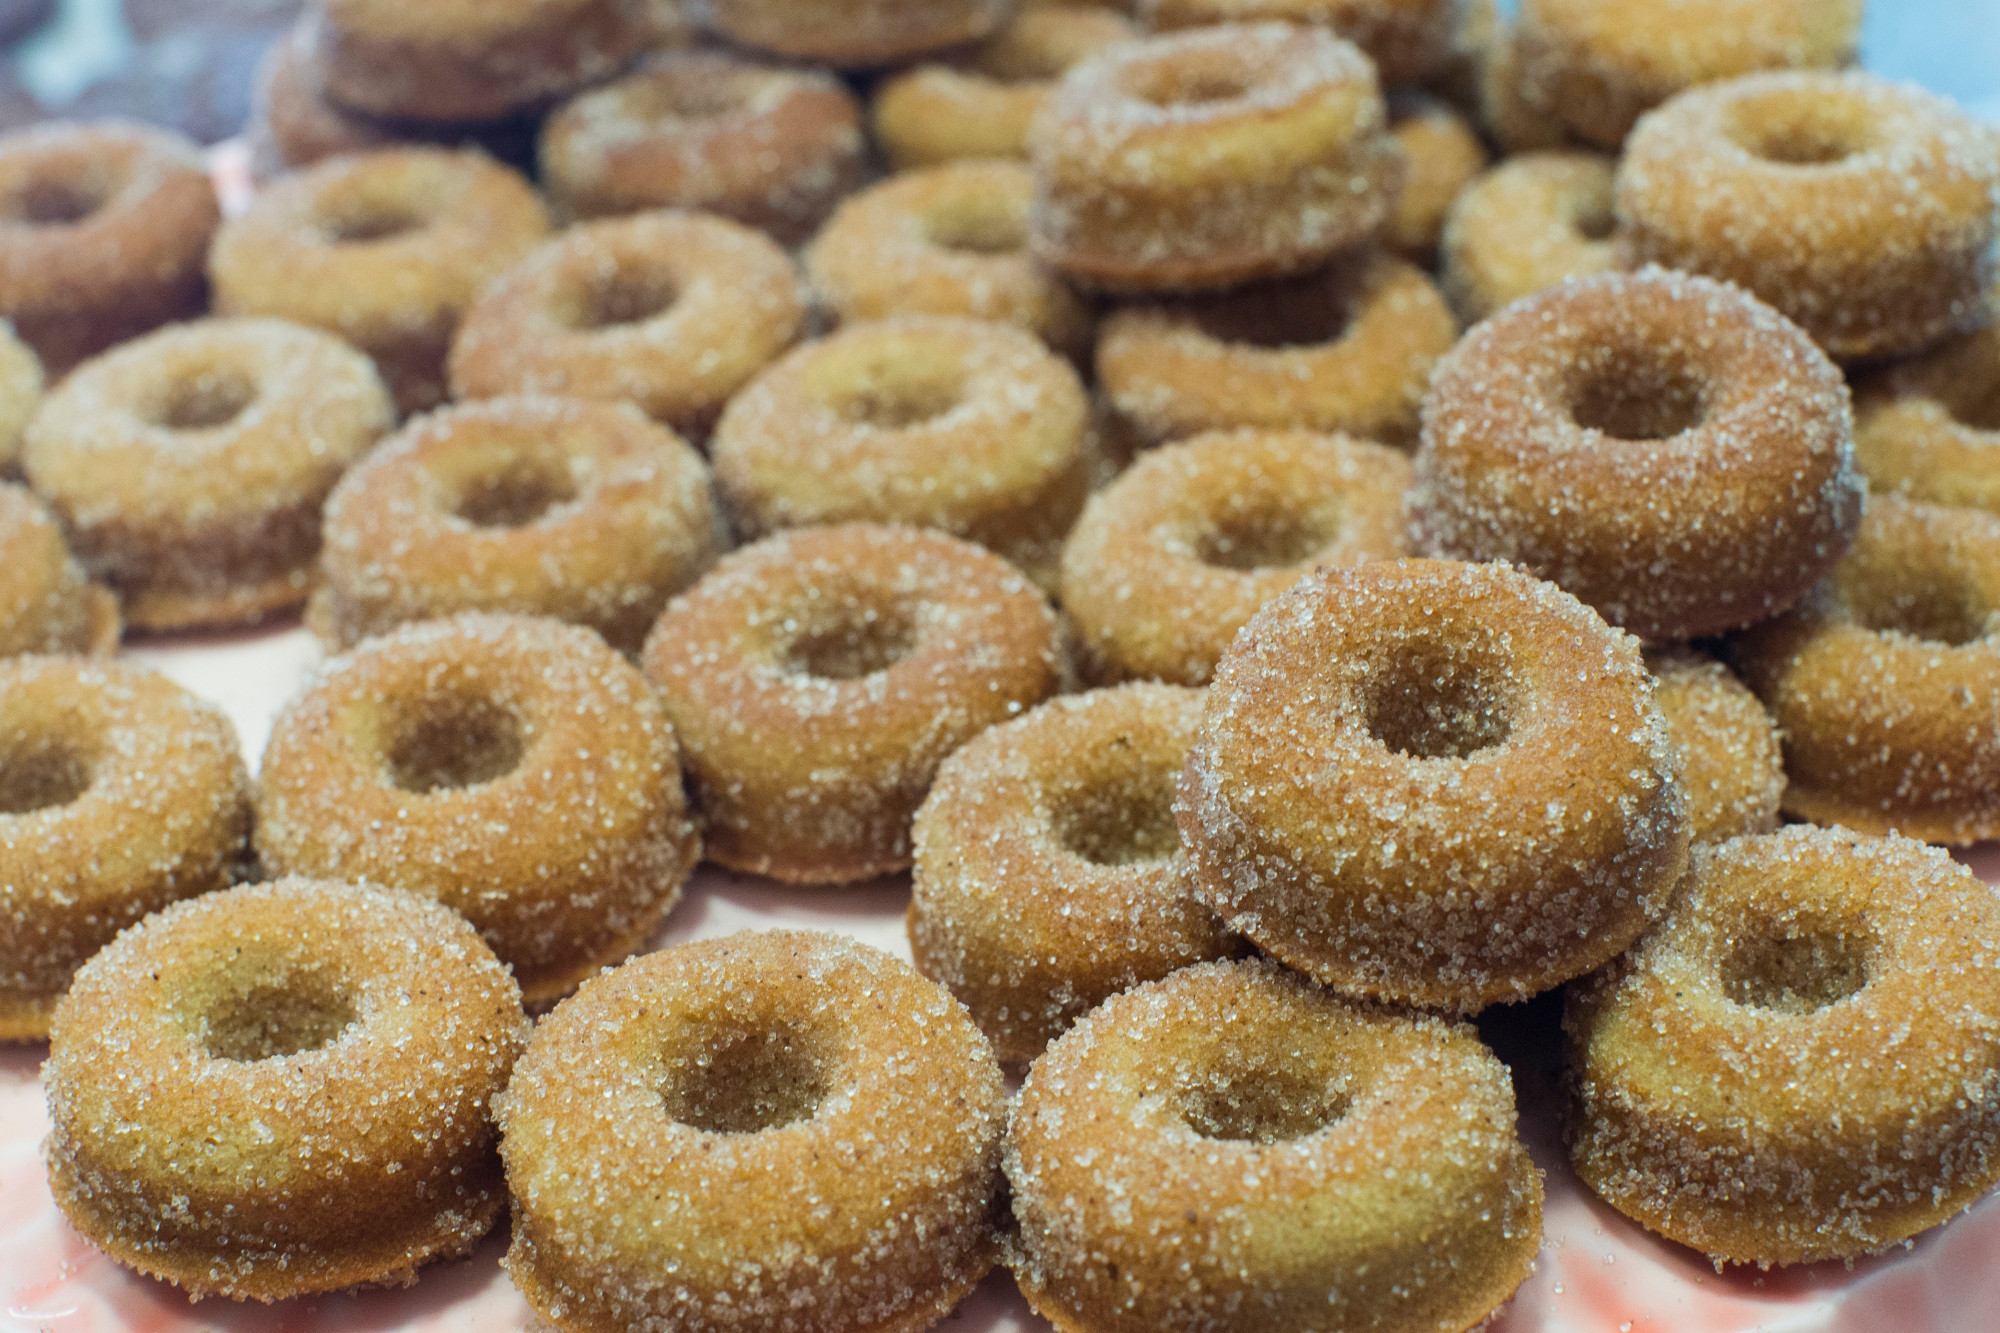 Golden donuts now on sale in Vegas